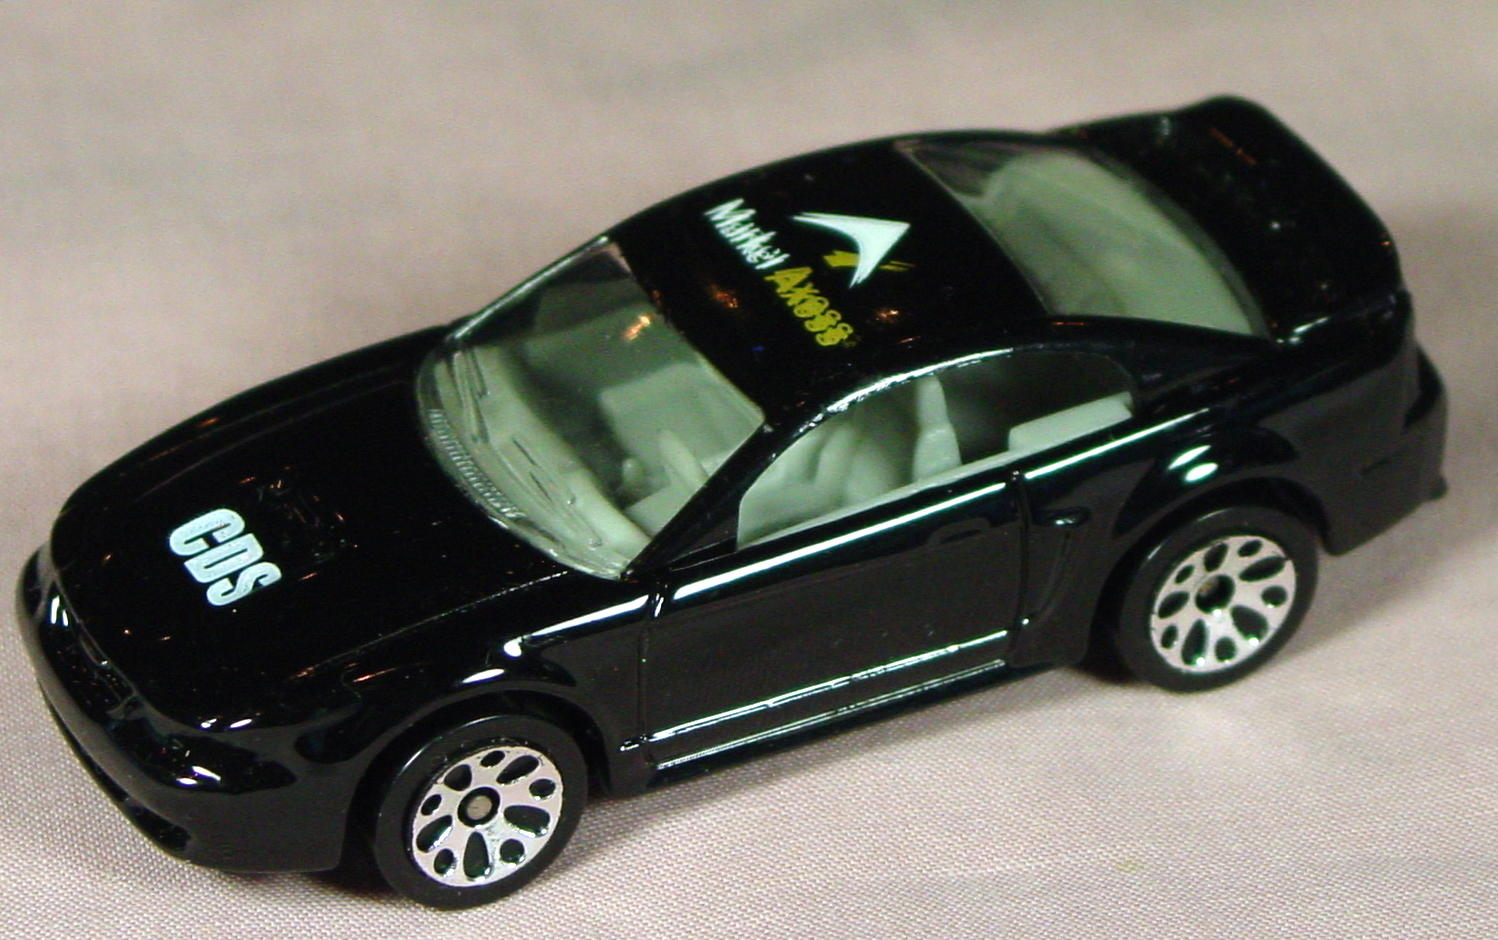 ASAP-CCI 17 I - 99 Ford Mustang Black CDS Market Axess ASAP